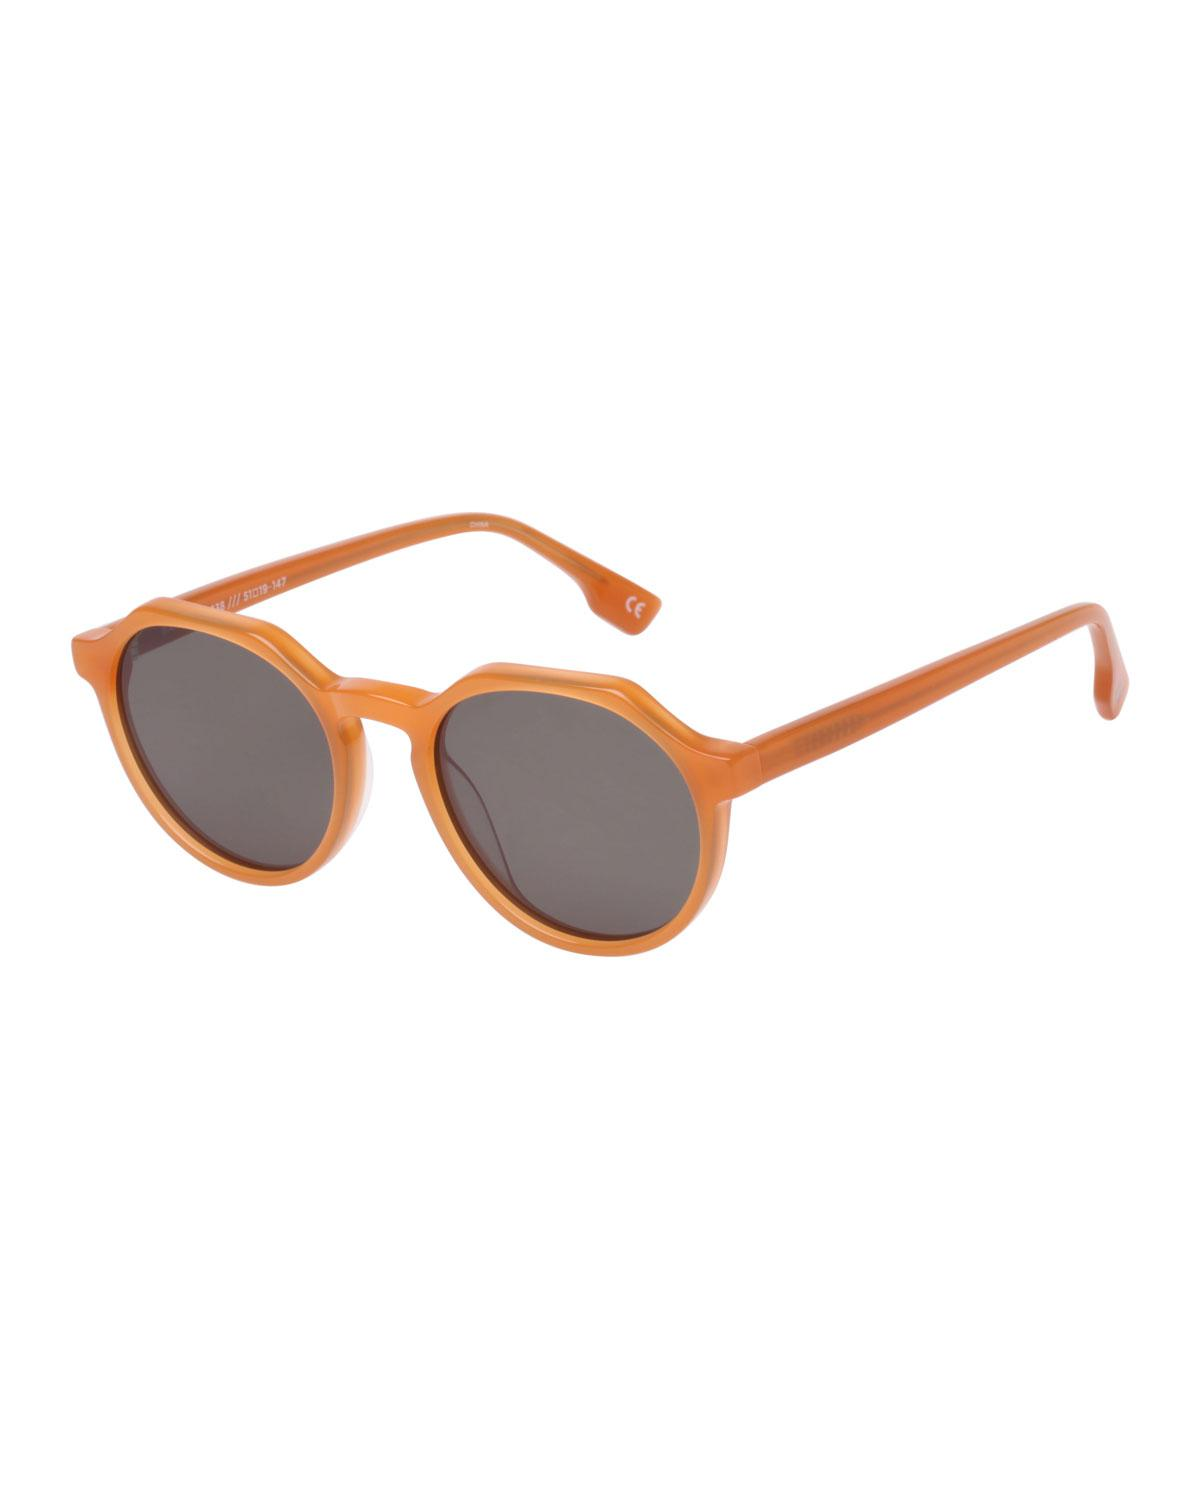 74a0d098b4e7f Lyst - Le Specs Bang Round Plastic Keyhole Sunglasses in Brown